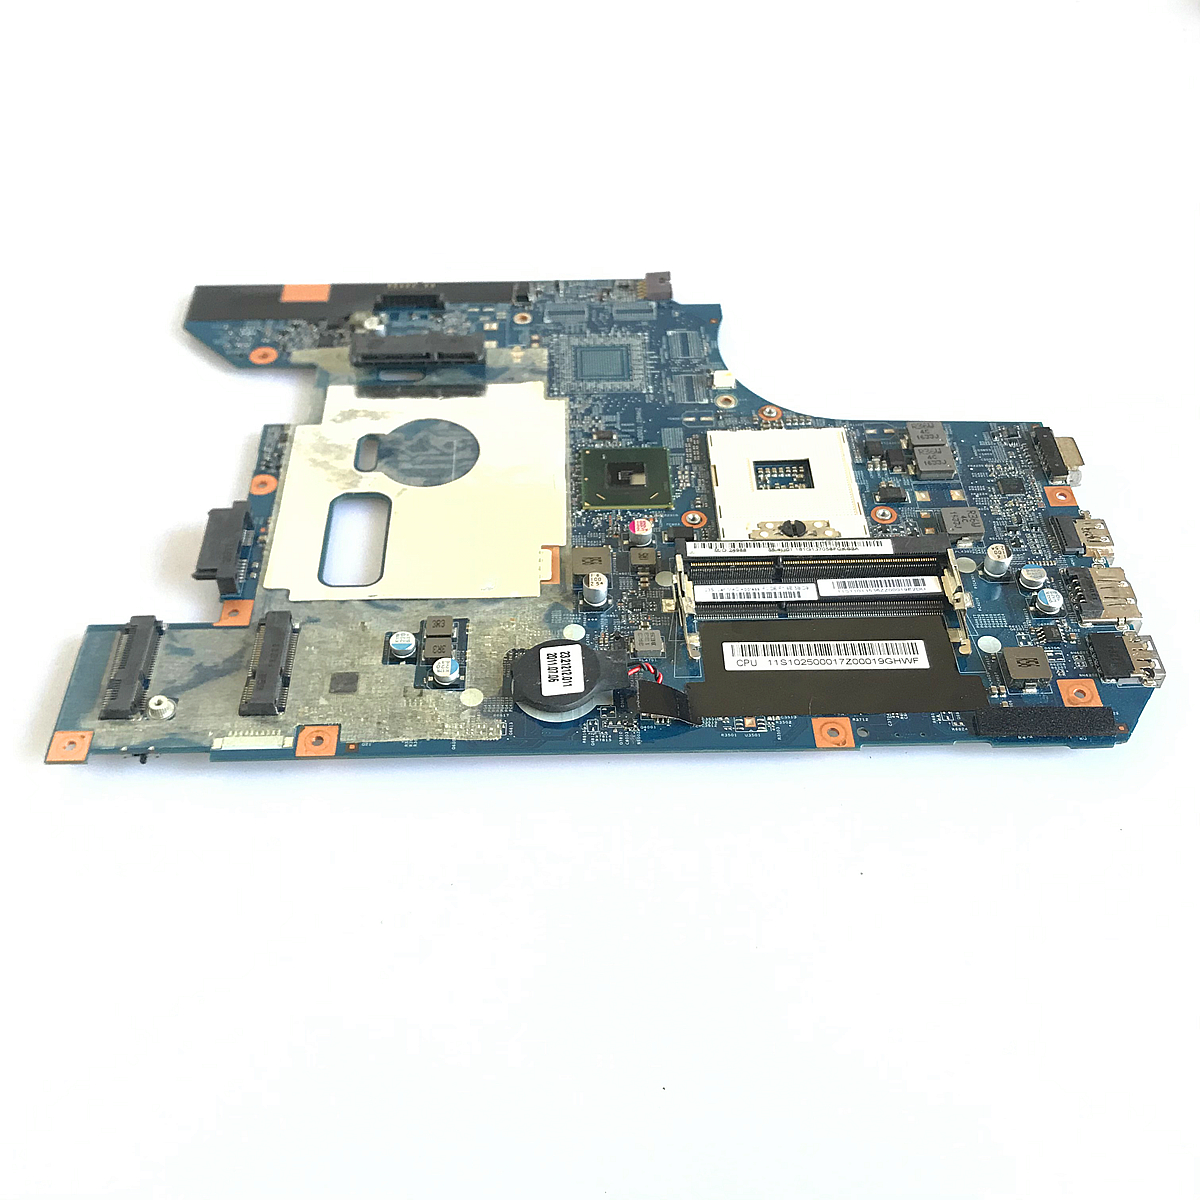 10290-2 48.4PA01.021 LZ57 MB mainboard for Lenovo B570 B570E motherboard V570 V570C motherboard HM65 PGA989 full Tested working 4